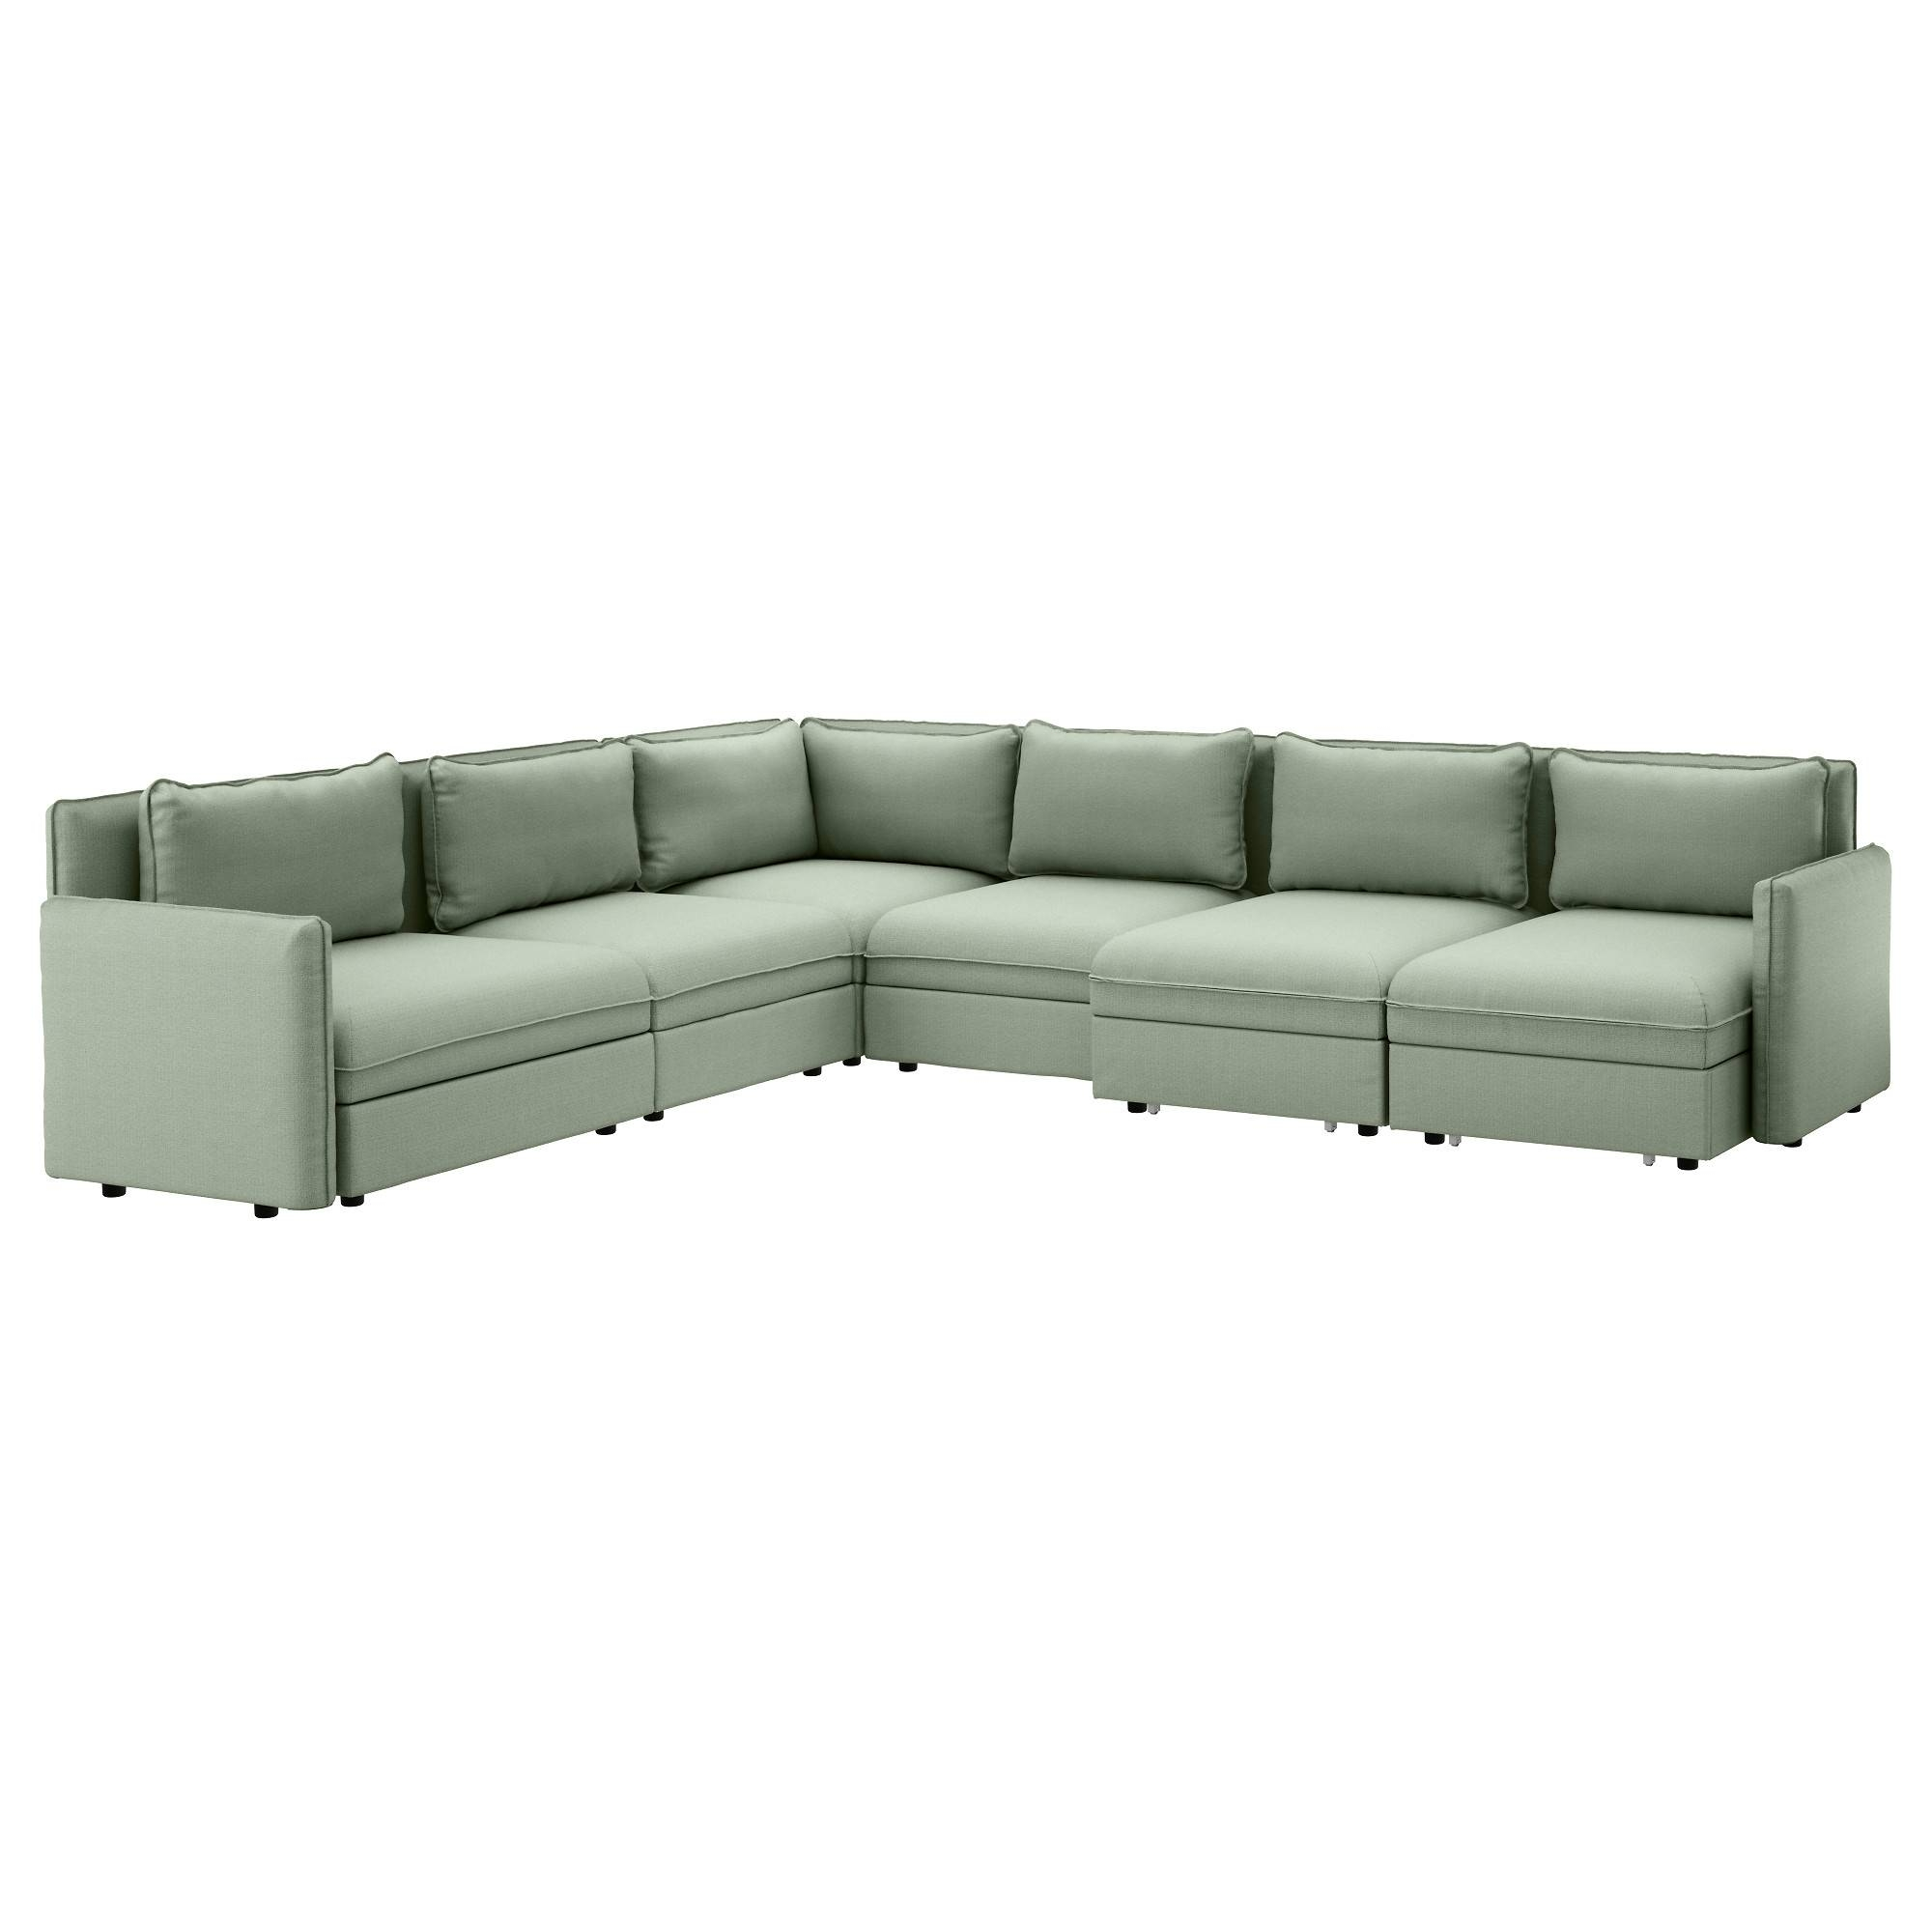 Sleeper-Sofas & Chair Beds - Ikea pertaining to Corner Sofa Bed With Storage Ikea (Image 22 of 30)